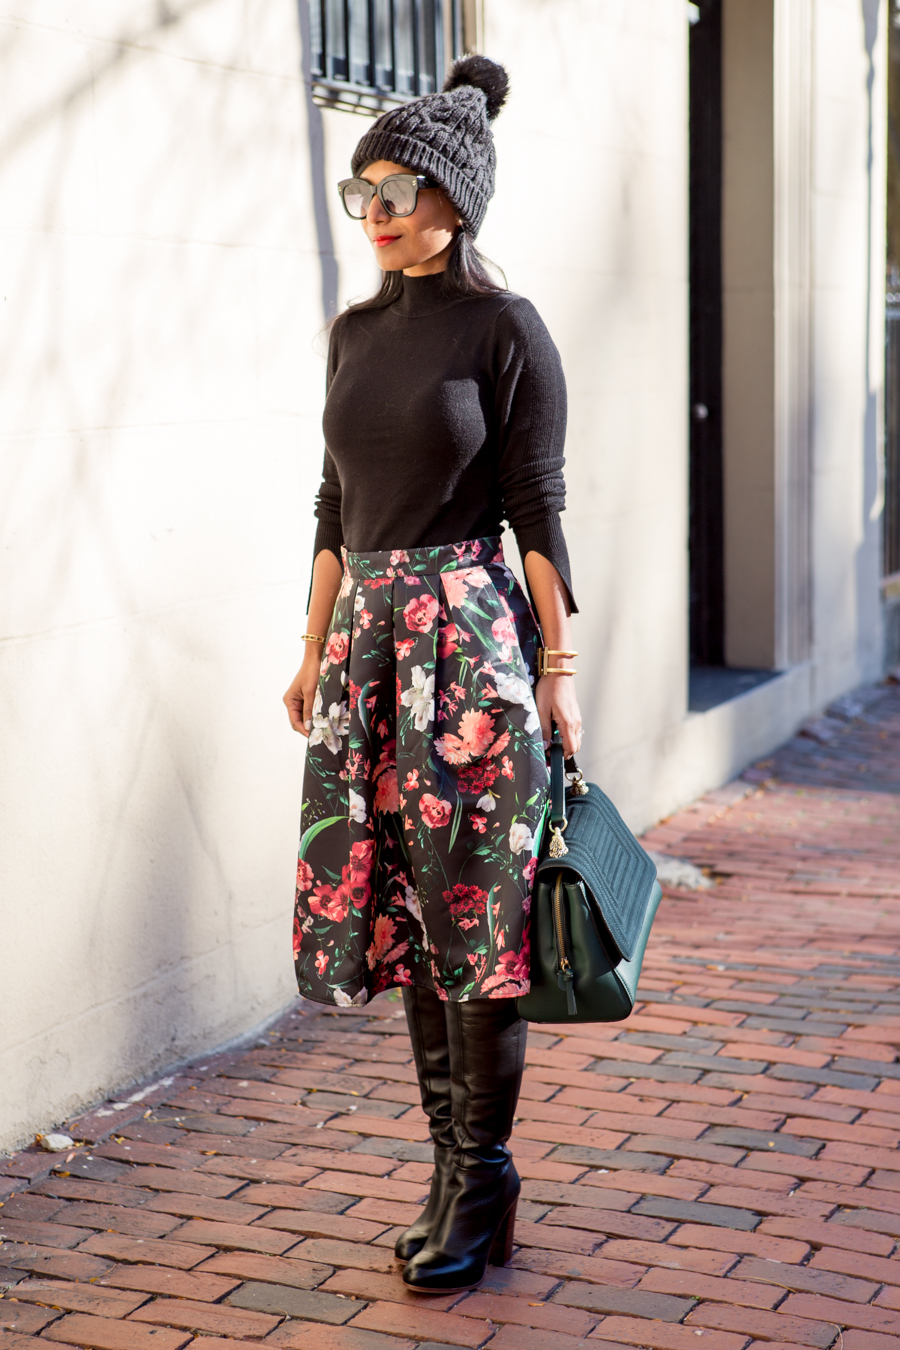 work style, office style, feminine style, midi skirt, aline skirt, dark florals, work satchel, corporate chic, forever 21, affordable style, zara, hinge, nordstrom sale, petite fashion, floral prints, tall boots, walking boots, winter boots